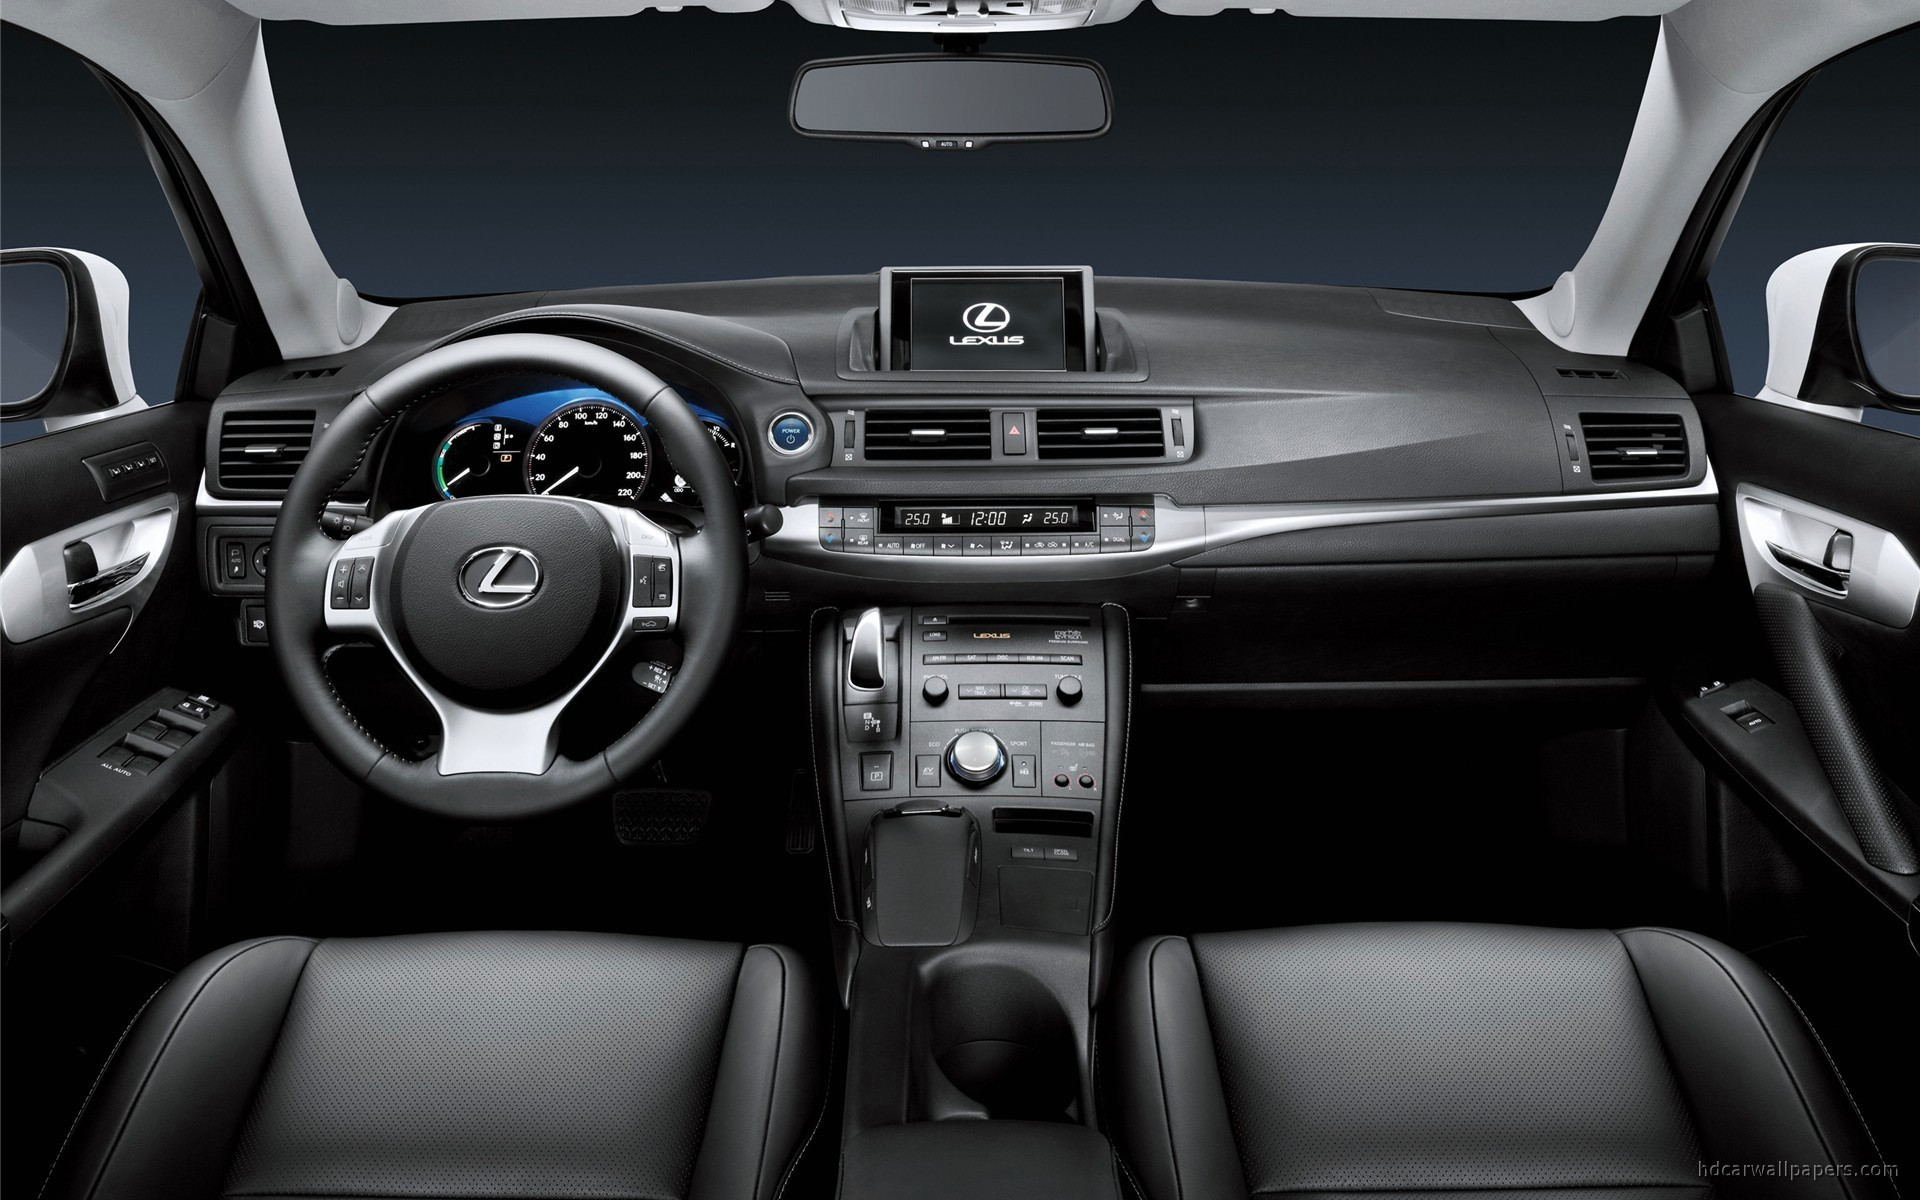 2011 lexus ct 200h interior wallpaper hd car wallpapers id 1070. Black Bedroom Furniture Sets. Home Design Ideas